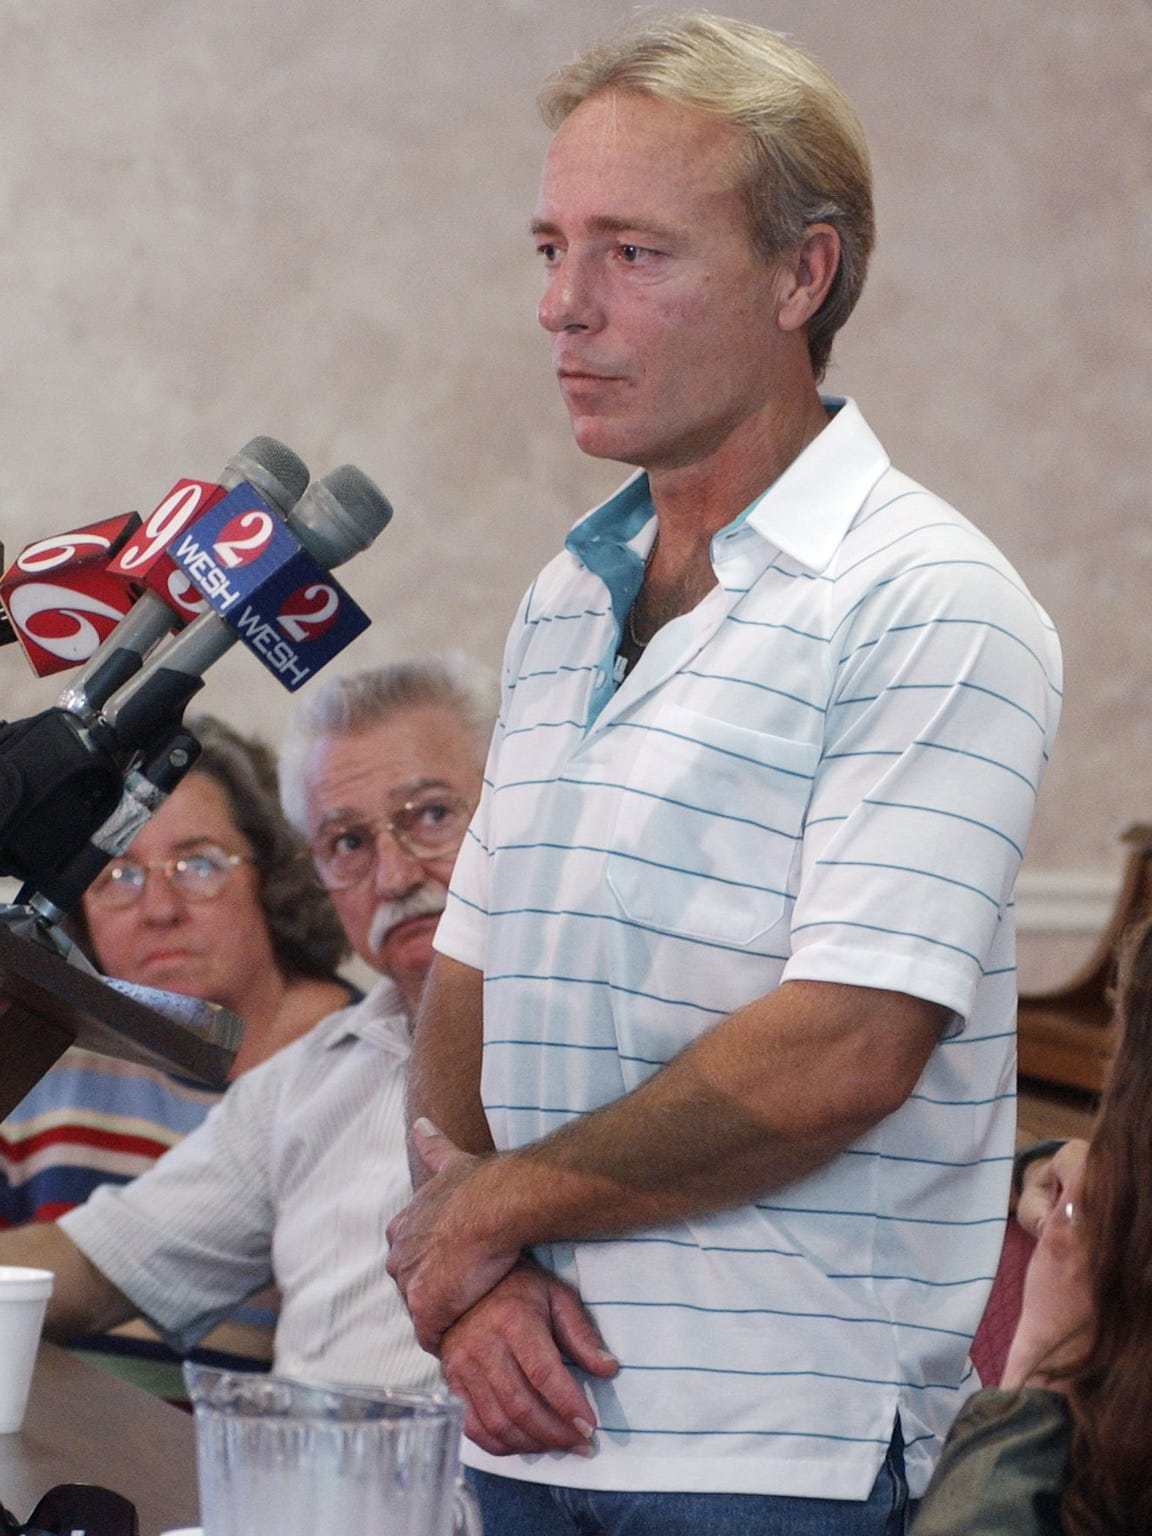 FILE: 8/12/04--Wilton Dedge, set free from jail, holds a press conference at First Baptist Church of Cocoa, with attorneys, and his family. In the background, watching him address the media, are his parents, Mary, and Gary.